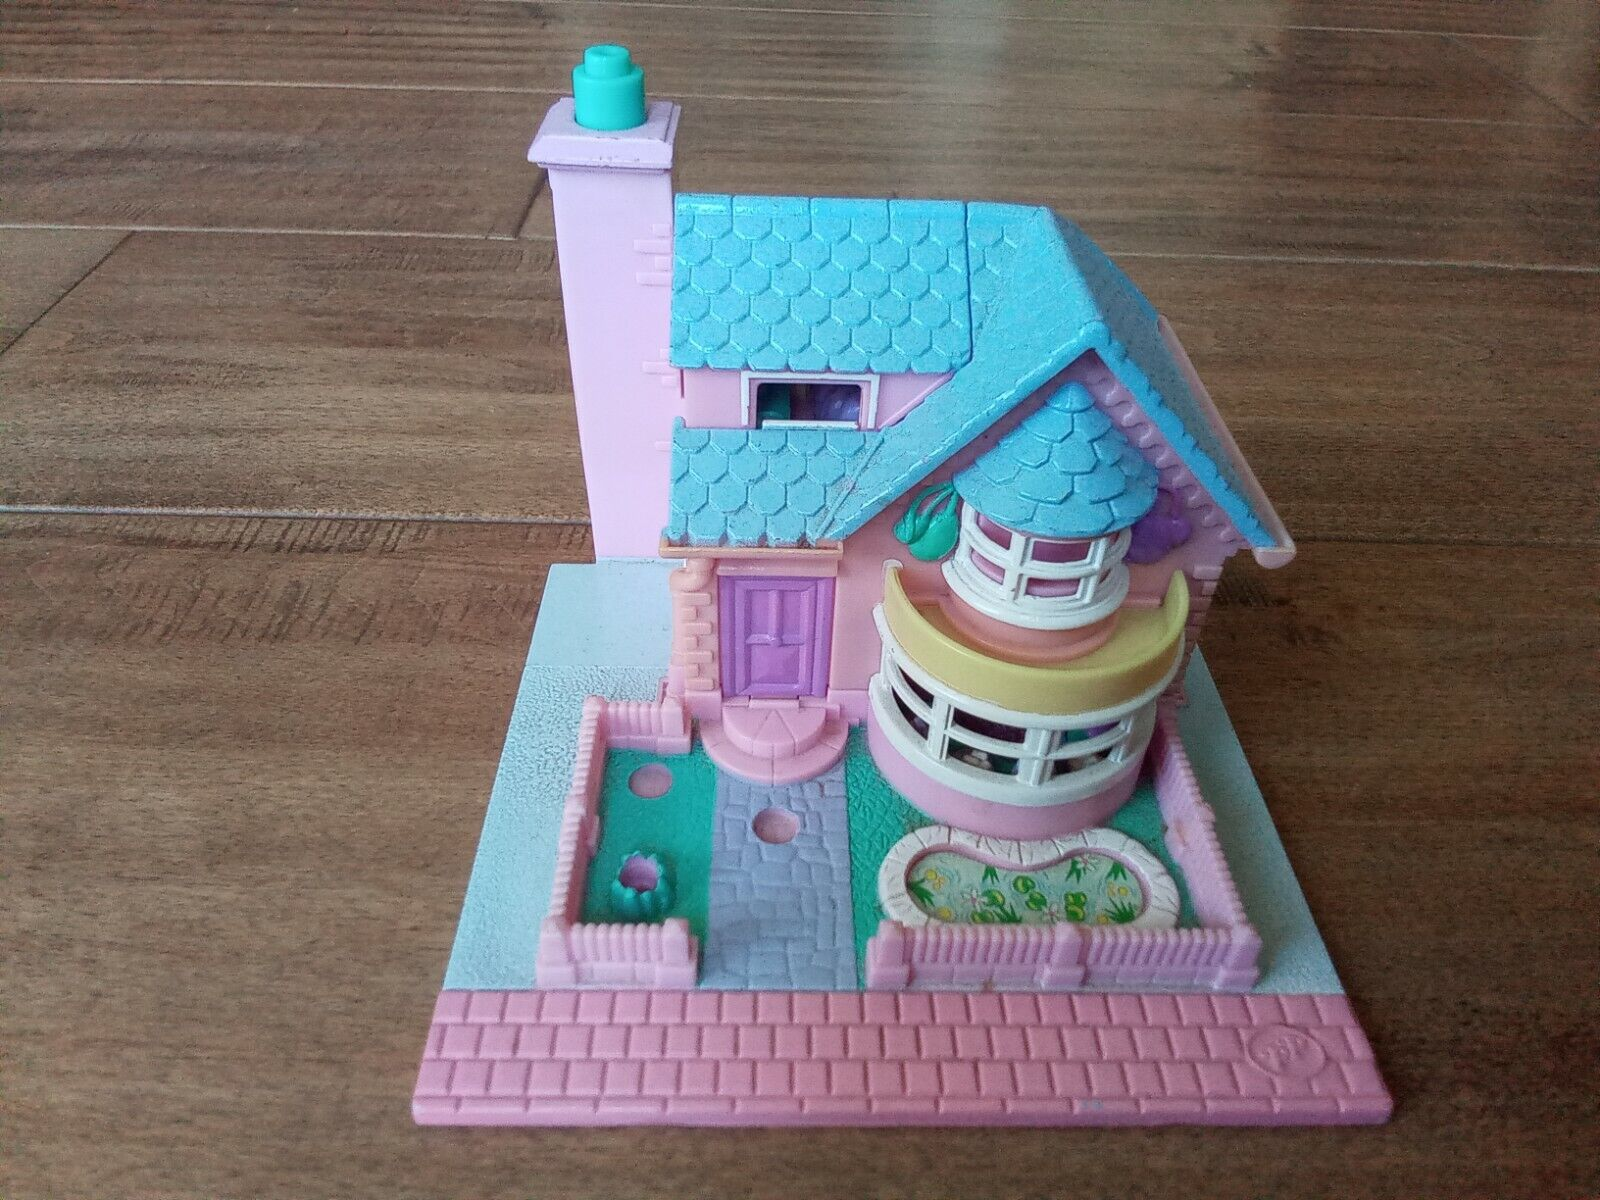 Pre-owned 1993 Poly Pocket Bay Window House - $9.99